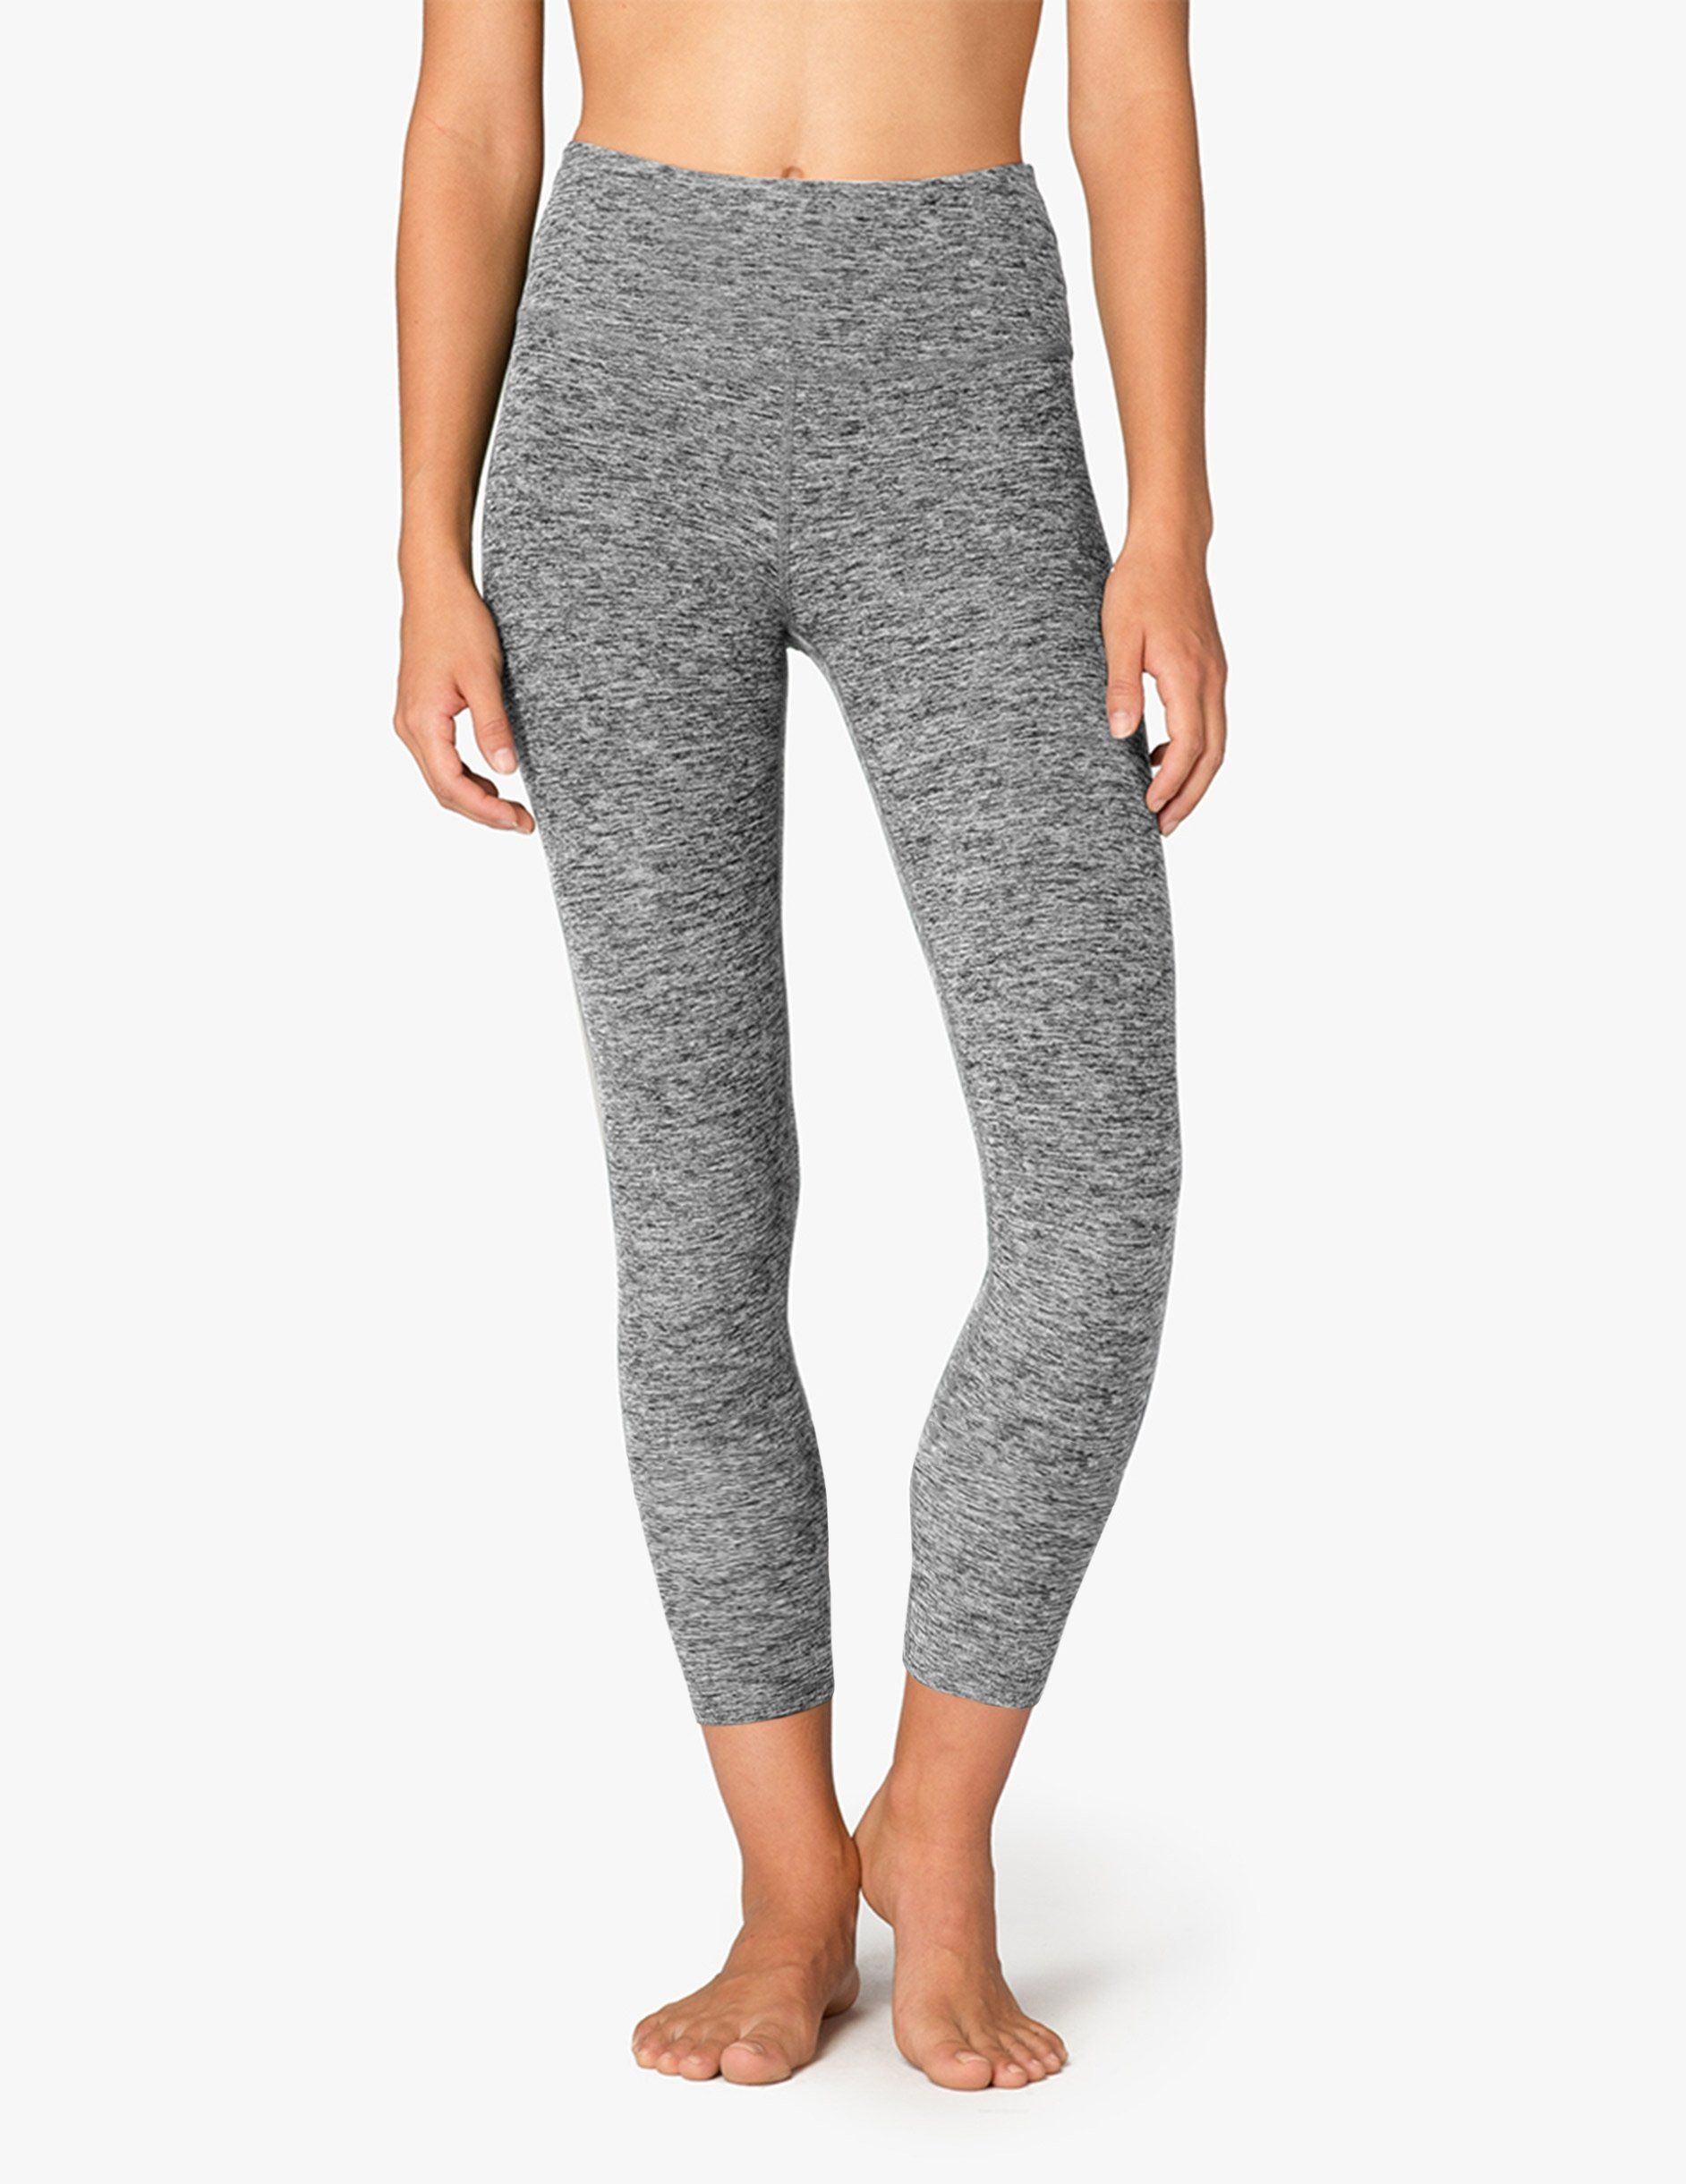 8d61b9d5830ef Spacedye Caught In The Midi High Waisted Legging | FITNESS | Capri ...